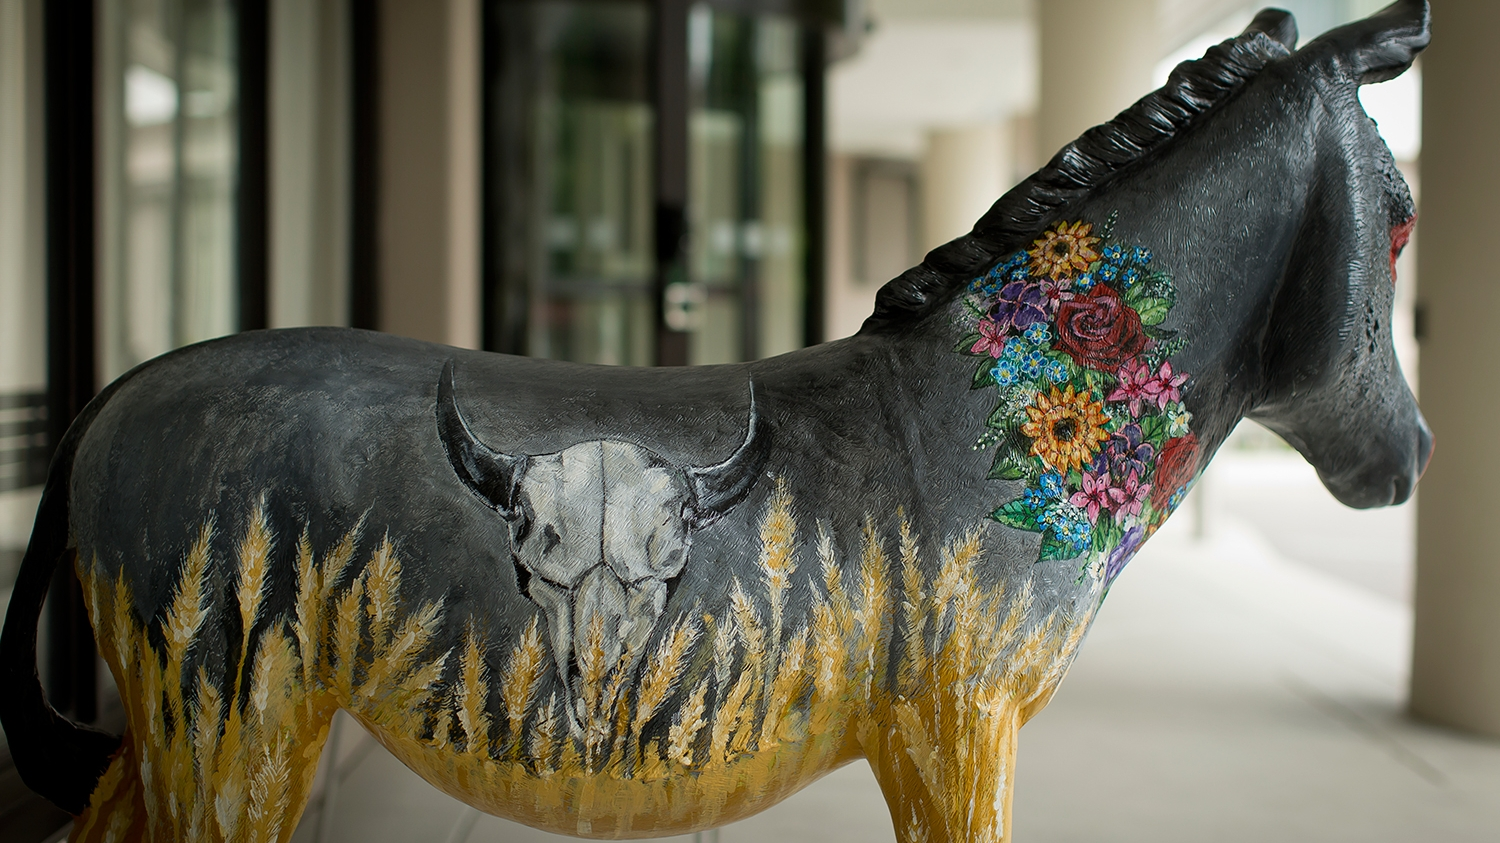 A donkey painted with visual elements representing North Dakota.